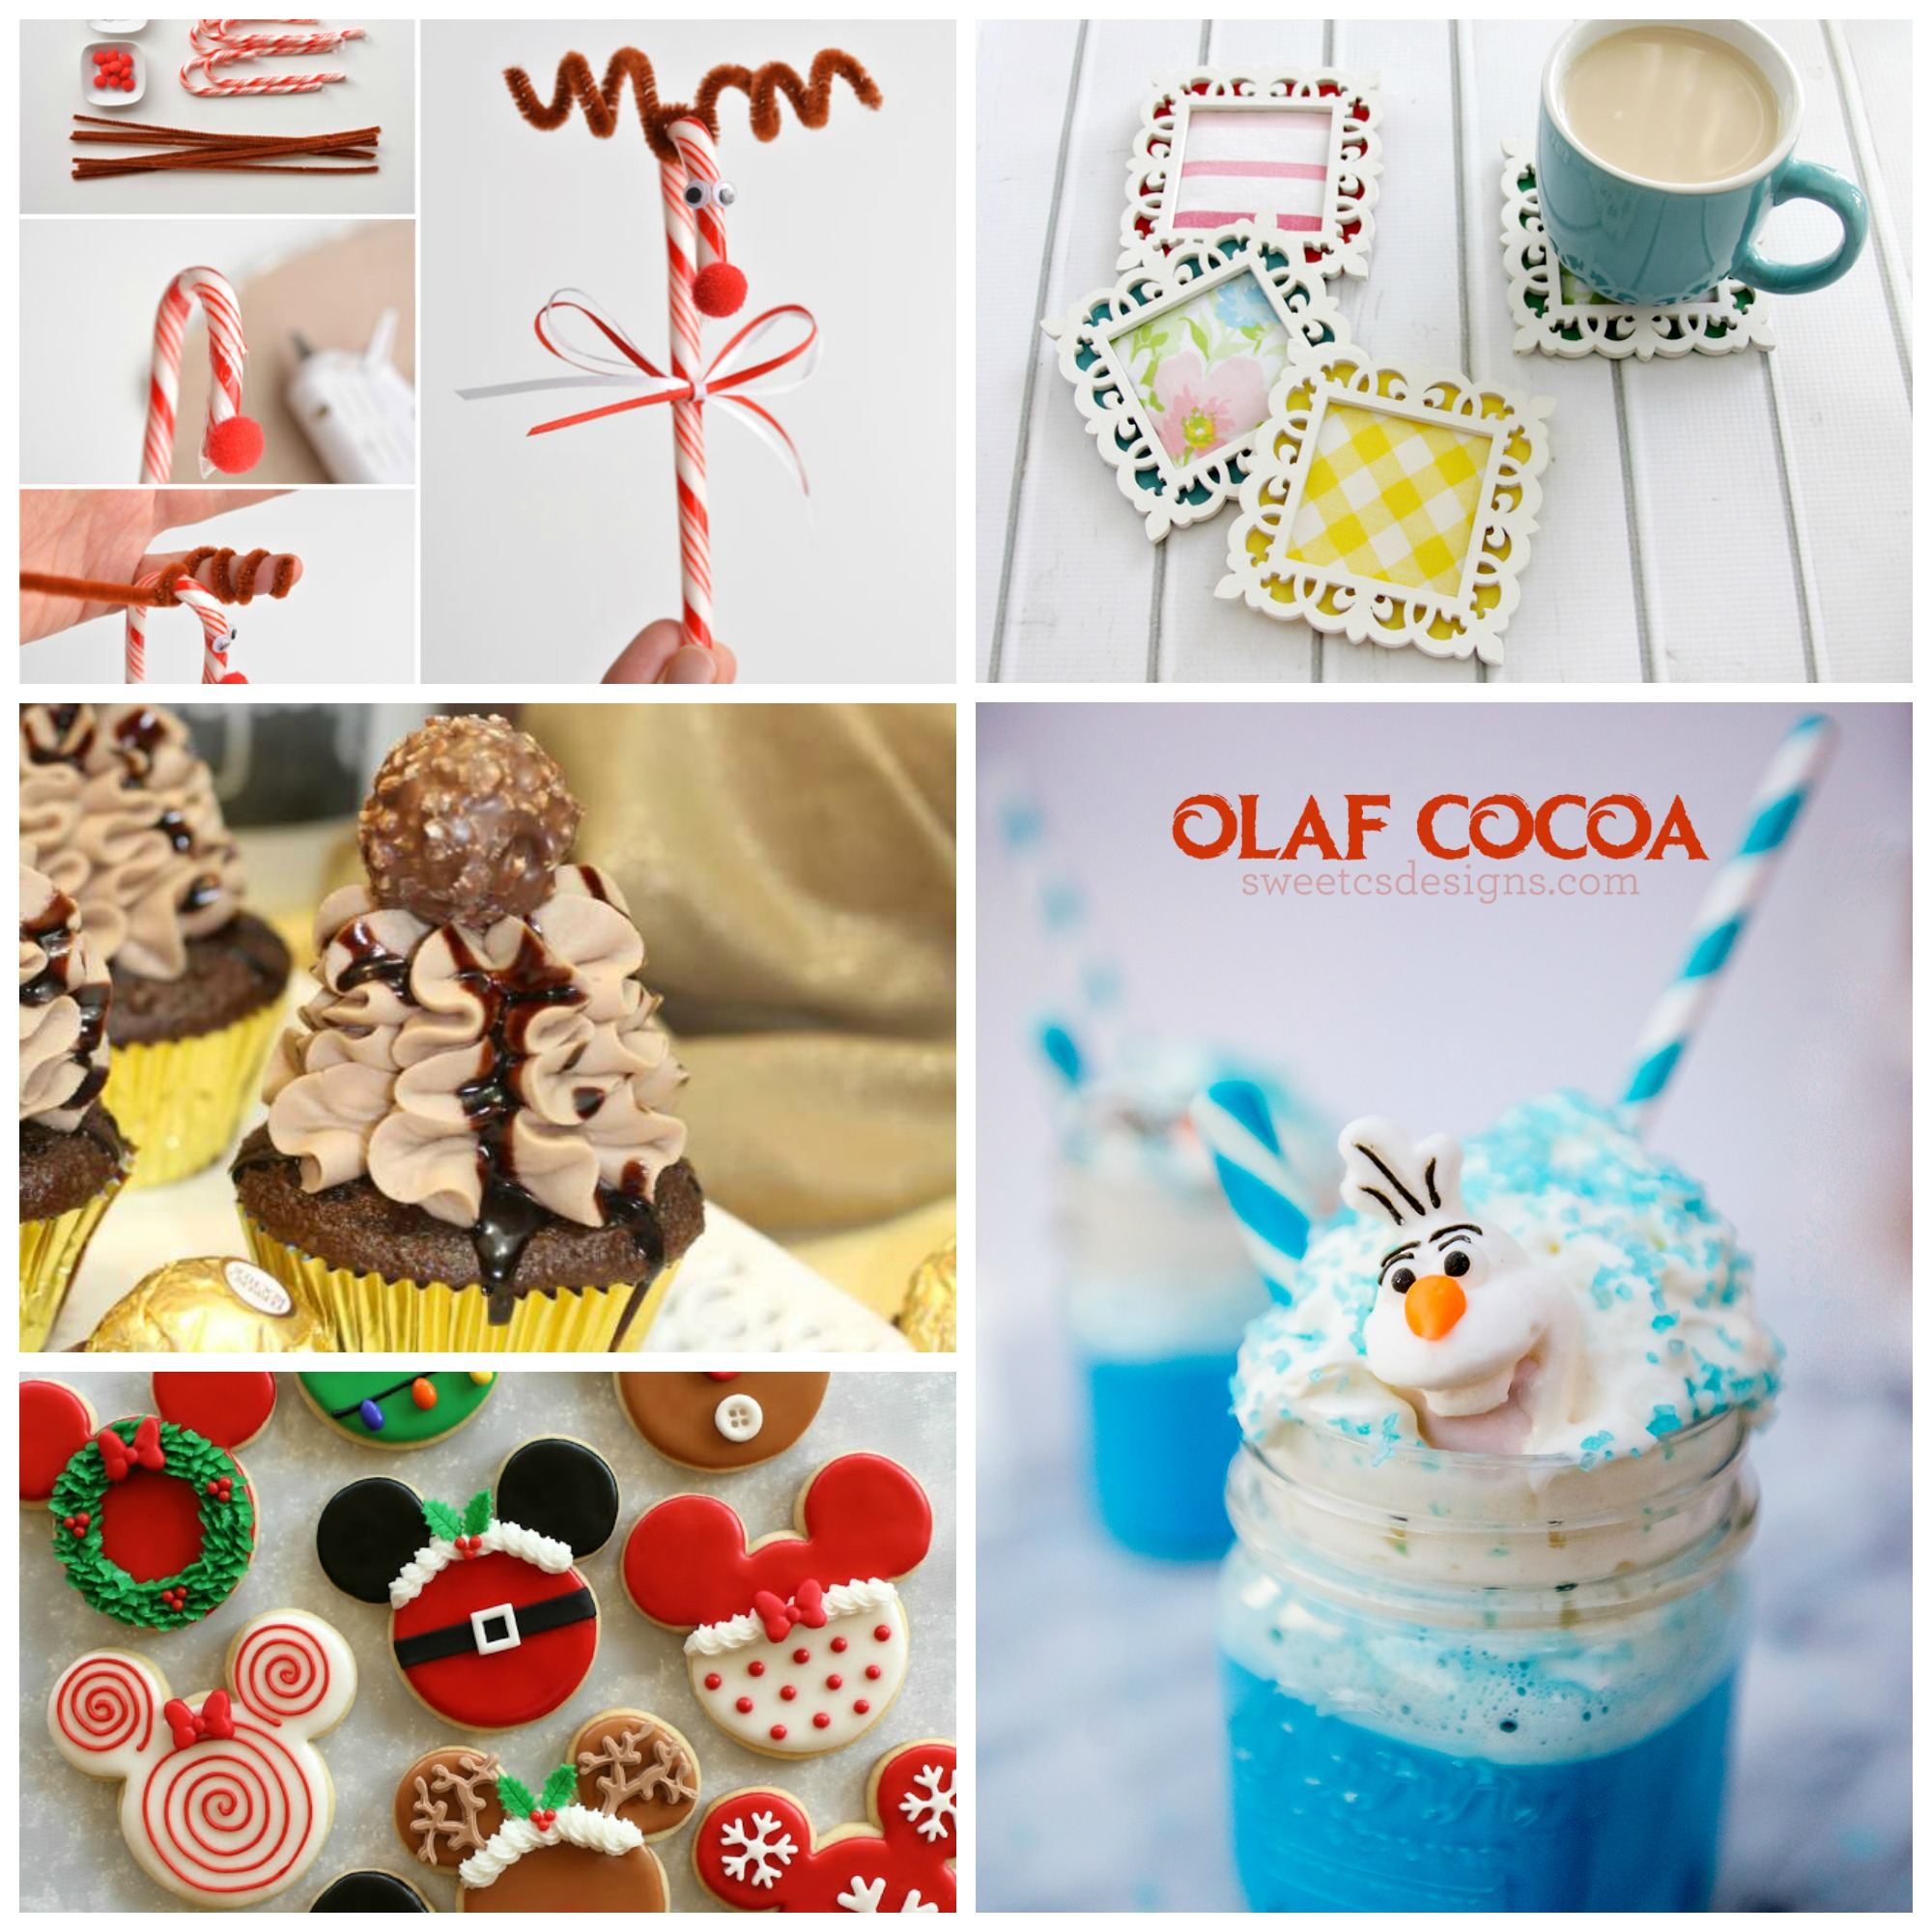 Kitchen Fun & Crafty Friday Link Party #193